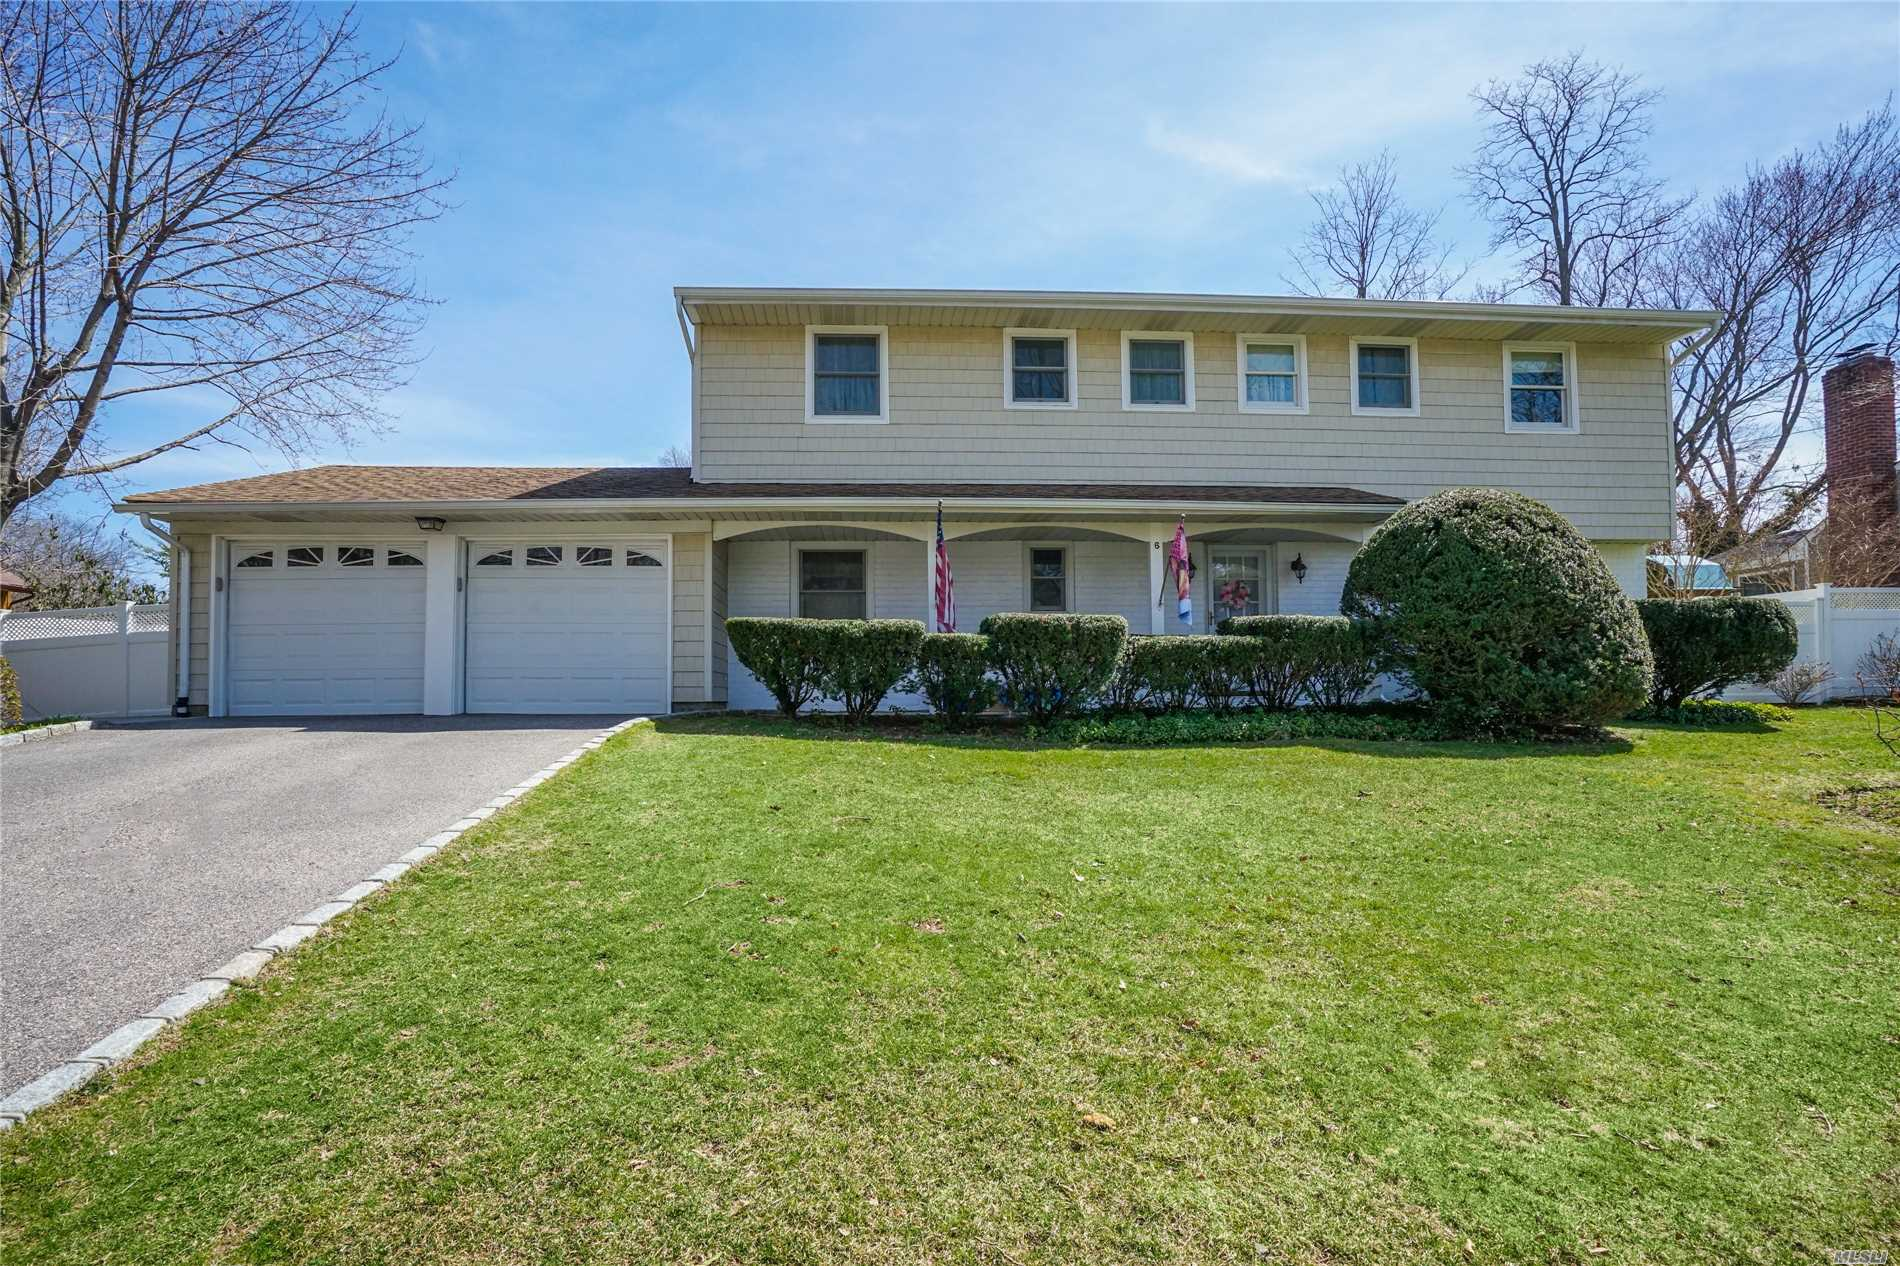 Mint Colonial !Quiet North Huntington Neighborhood! New Windows- New Baths- Updated EIK, New Oil Burner- Oil Tank Basement, Hardwood Floors , Living Room With Fireplace. Lovely screen porch/wood-burning stove; Private hedged yard Two Car Garage; IGS,